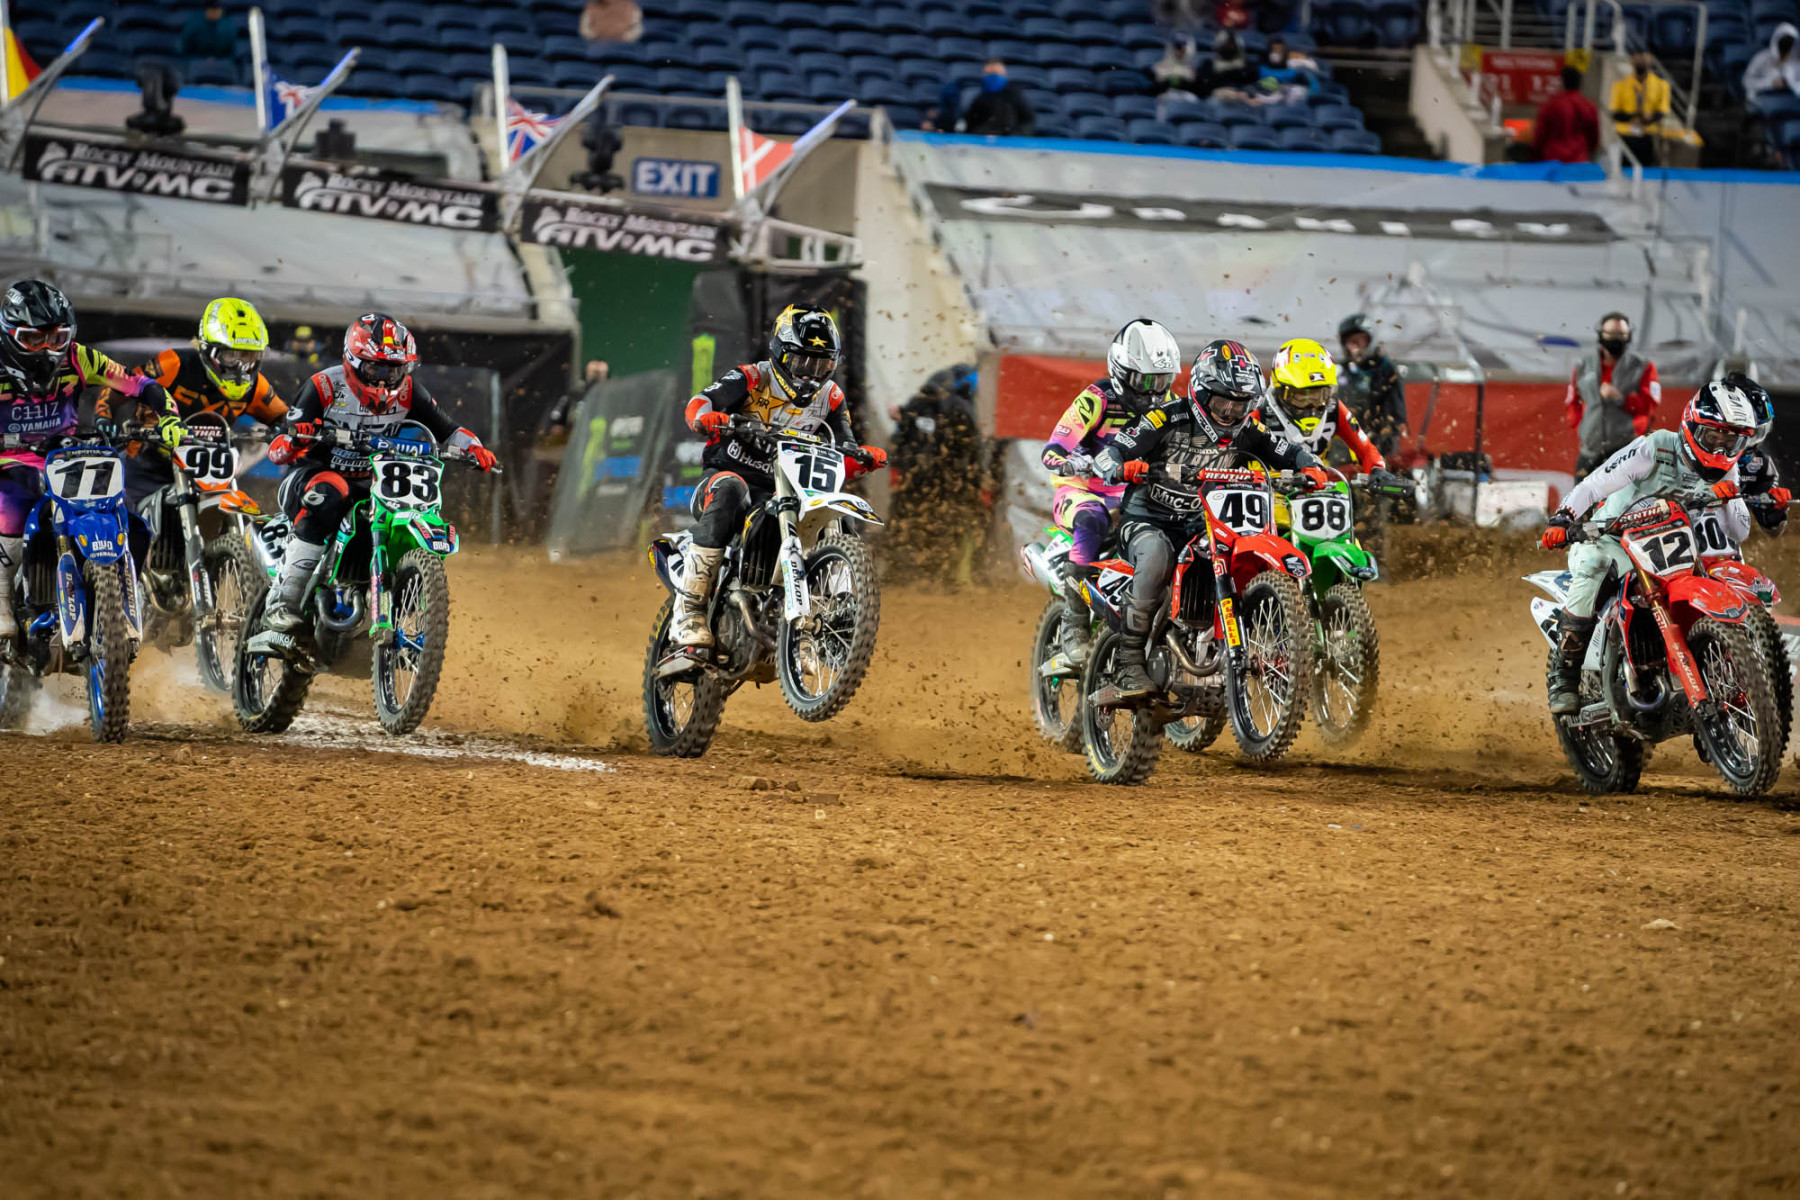 2021-ORLANDO-TWO-SUPERCROSS_KICKSTART_1544